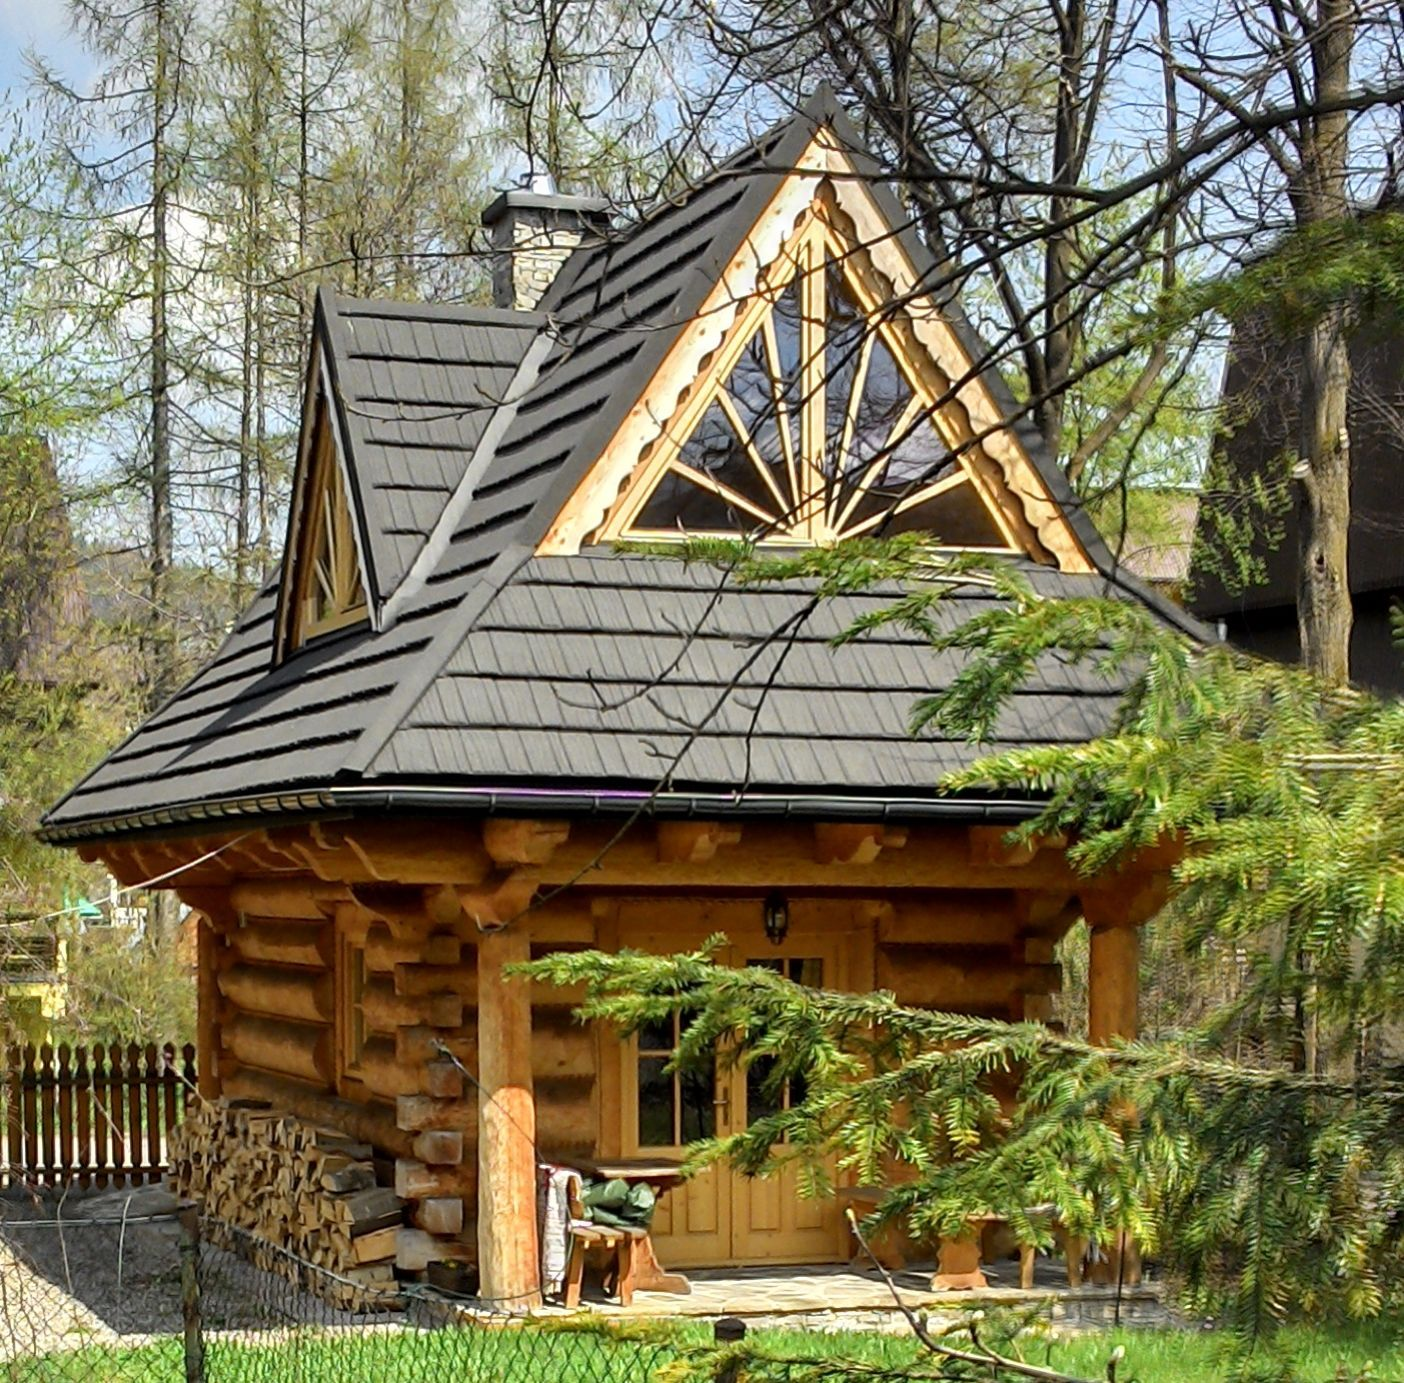 Little Log Houses ~ — The Little Log House Company #LogHouses | Log ...